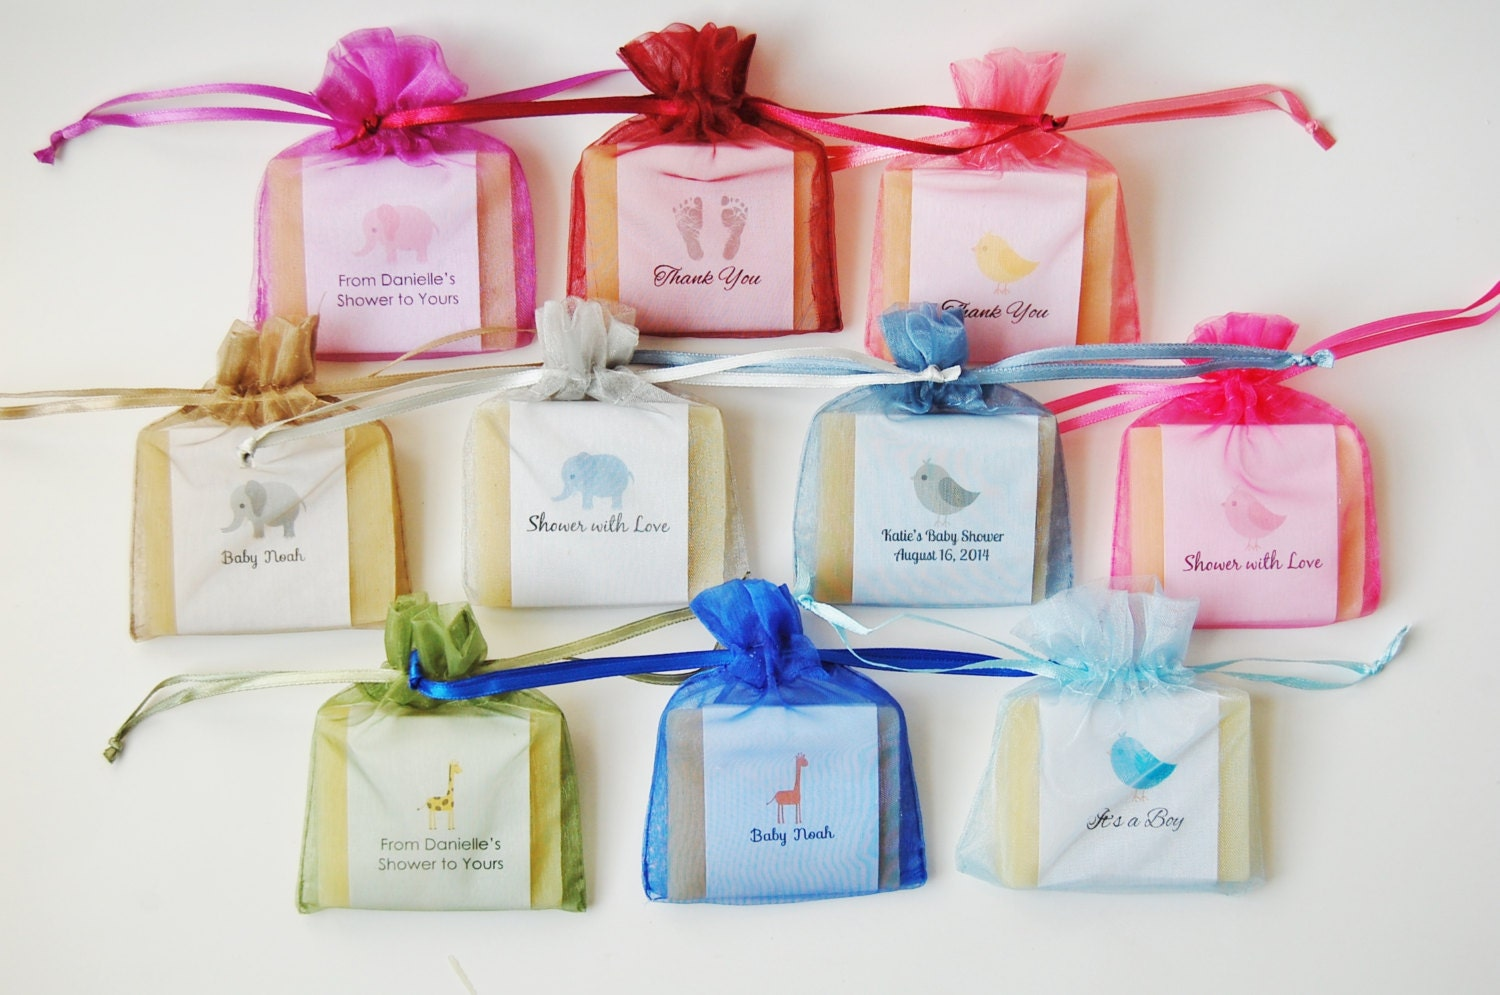 25 soap favors for baby shower